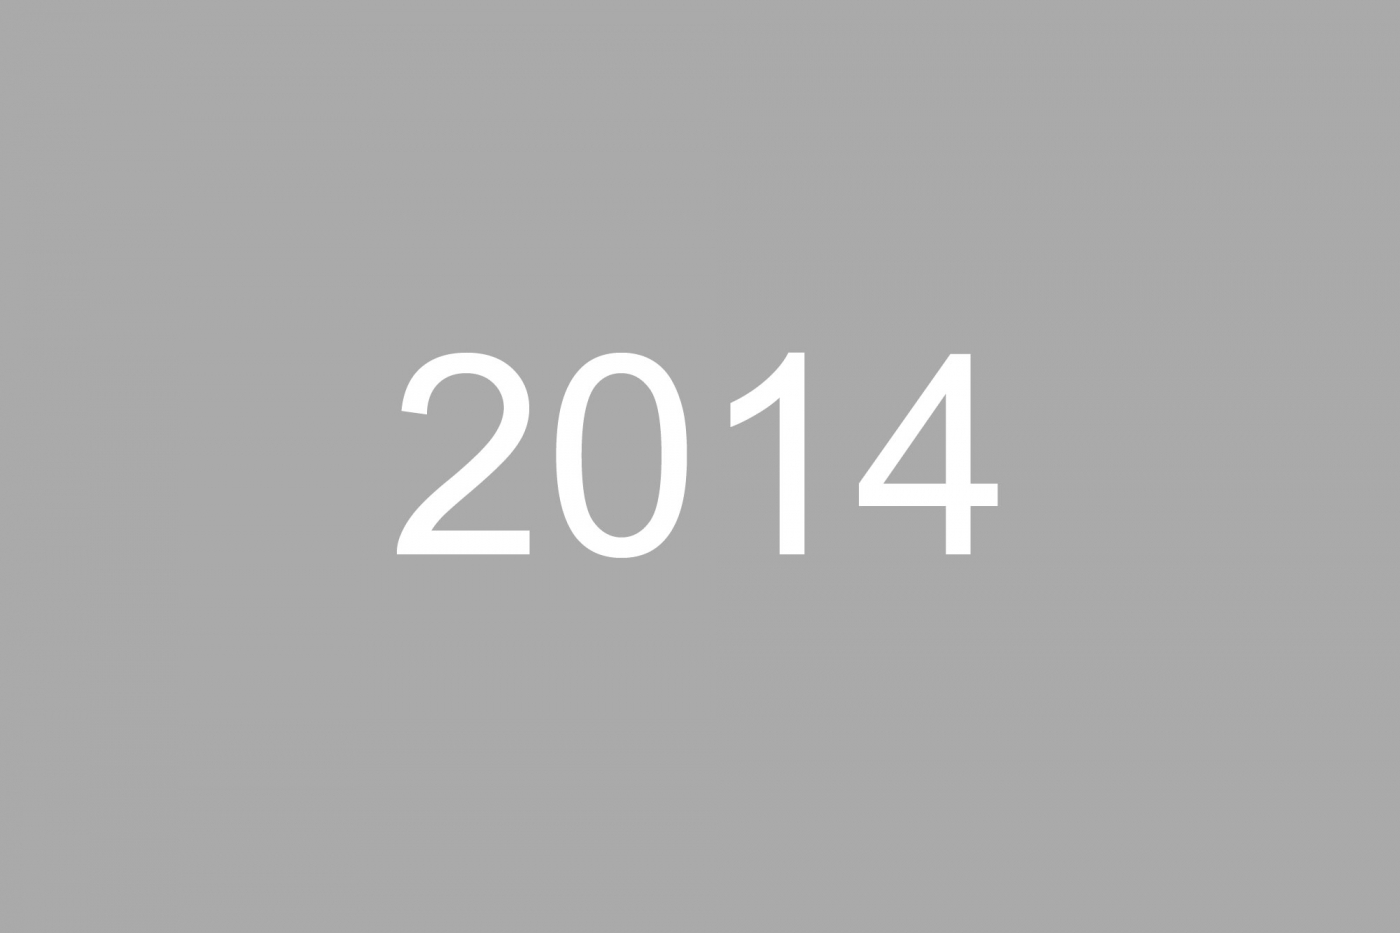 2014 News Archive